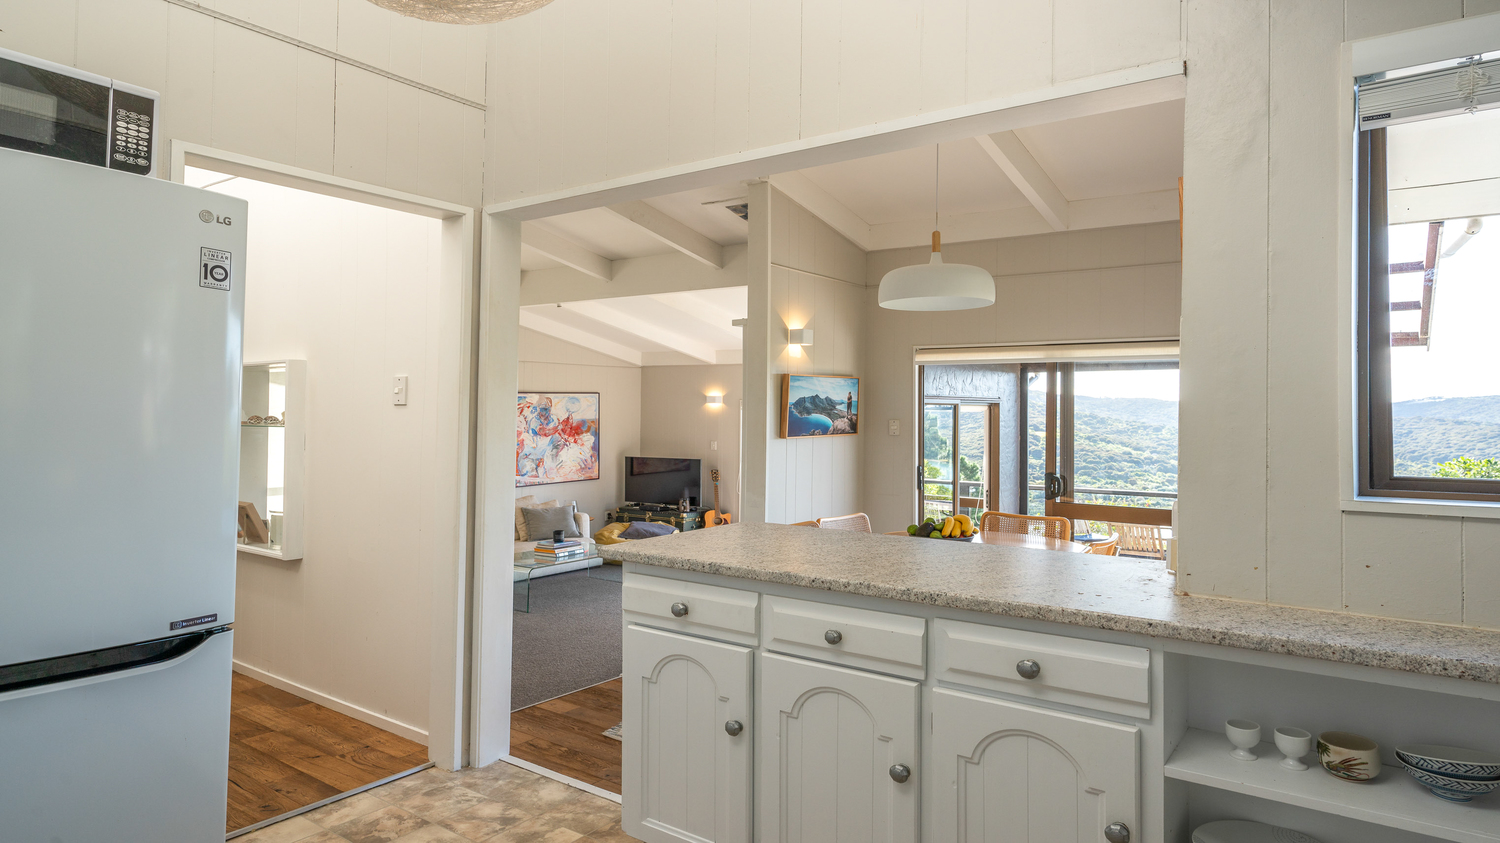 23._Baywatch_-_from_kitchen_to_lounge_and_dining_1500x843.jpg